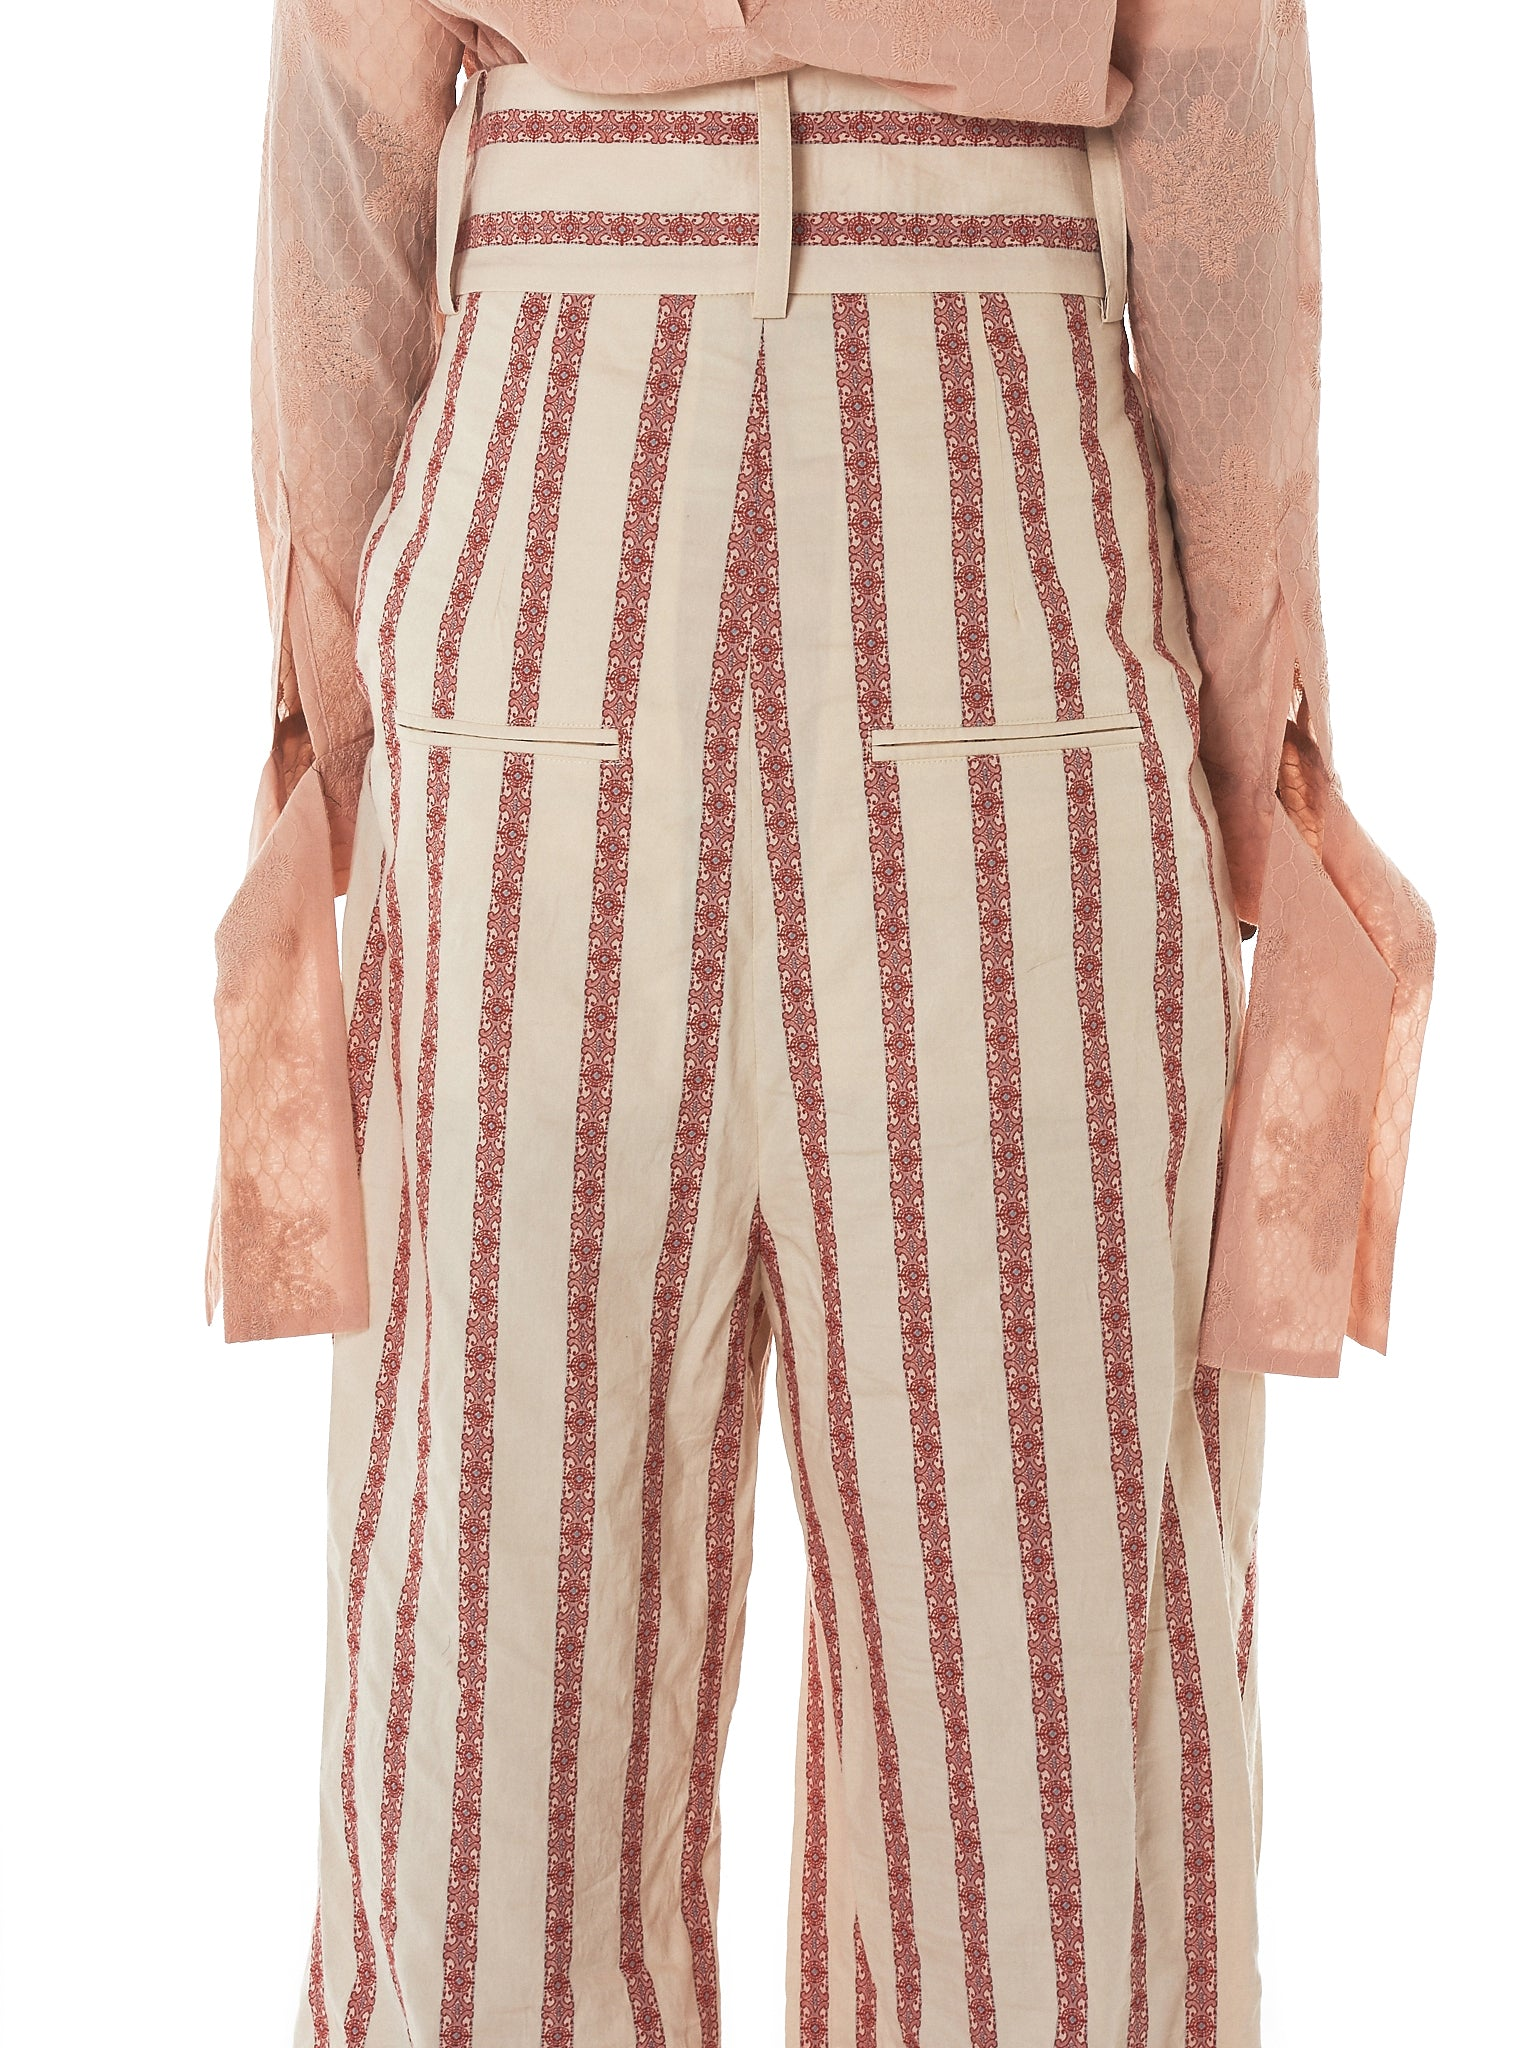 Daniel Gregory Natale Striped Trousers - Hlorenzo Detail 1